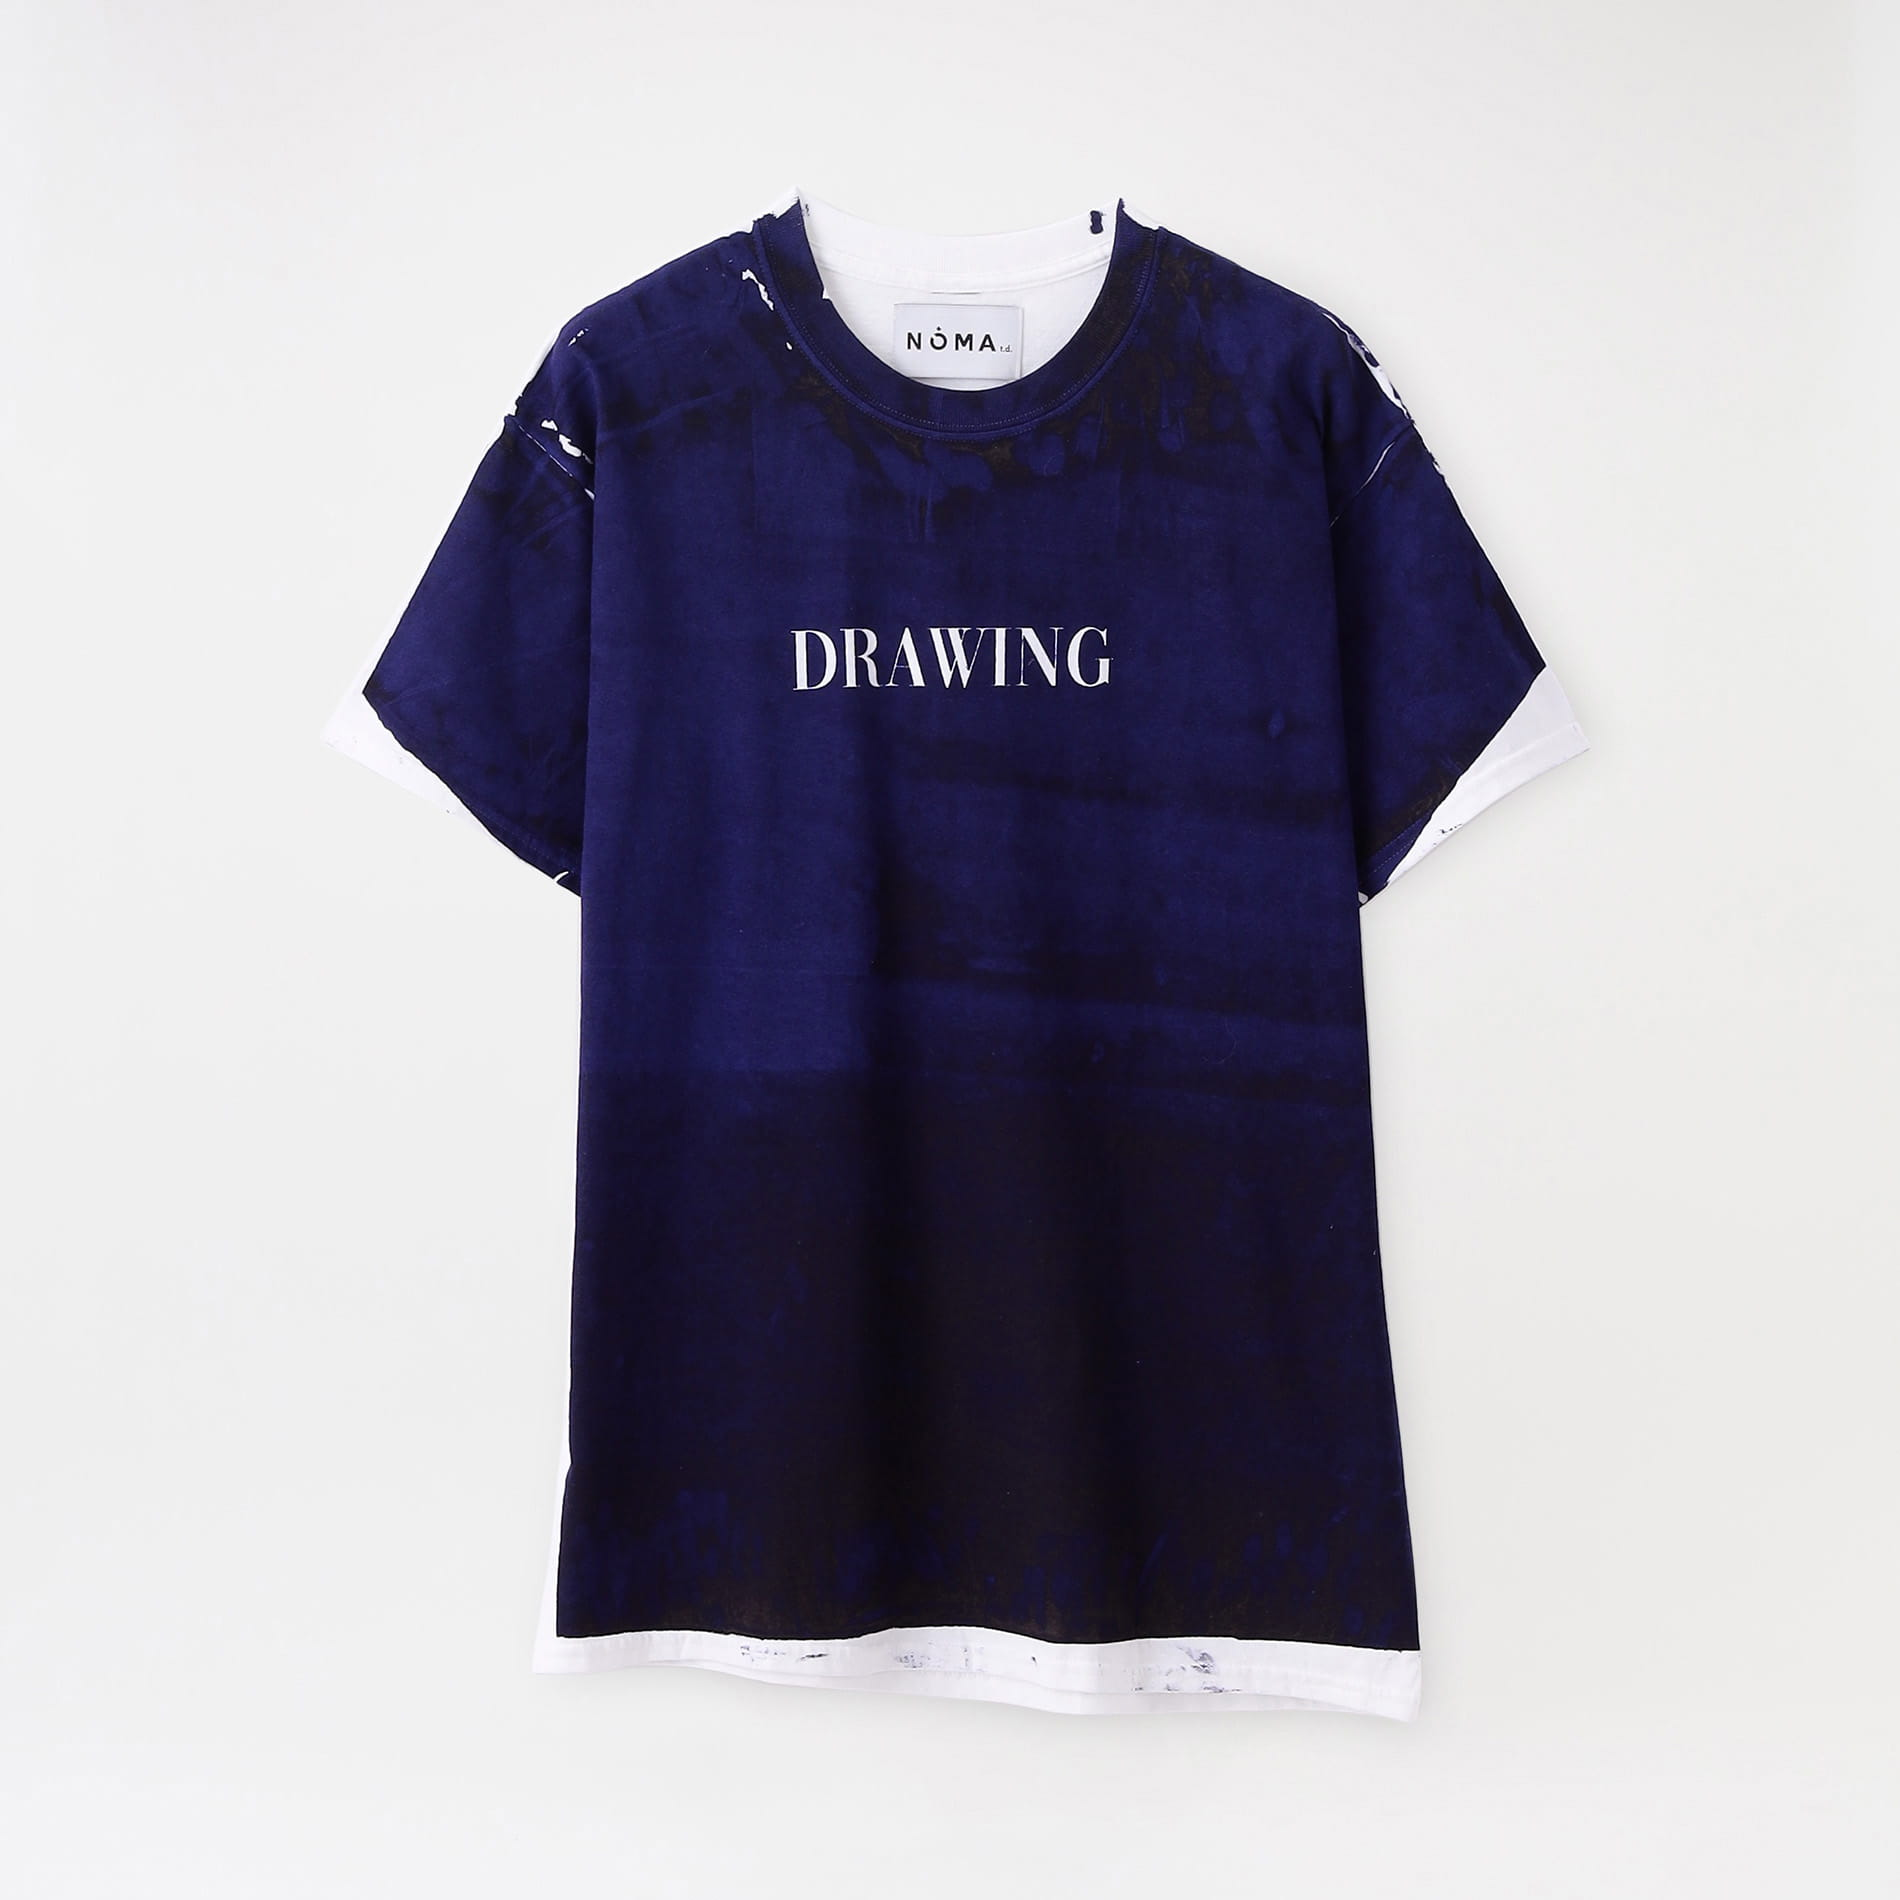 【NOMA t.d.】MEN Tシャツ Drawing Tee TS 01